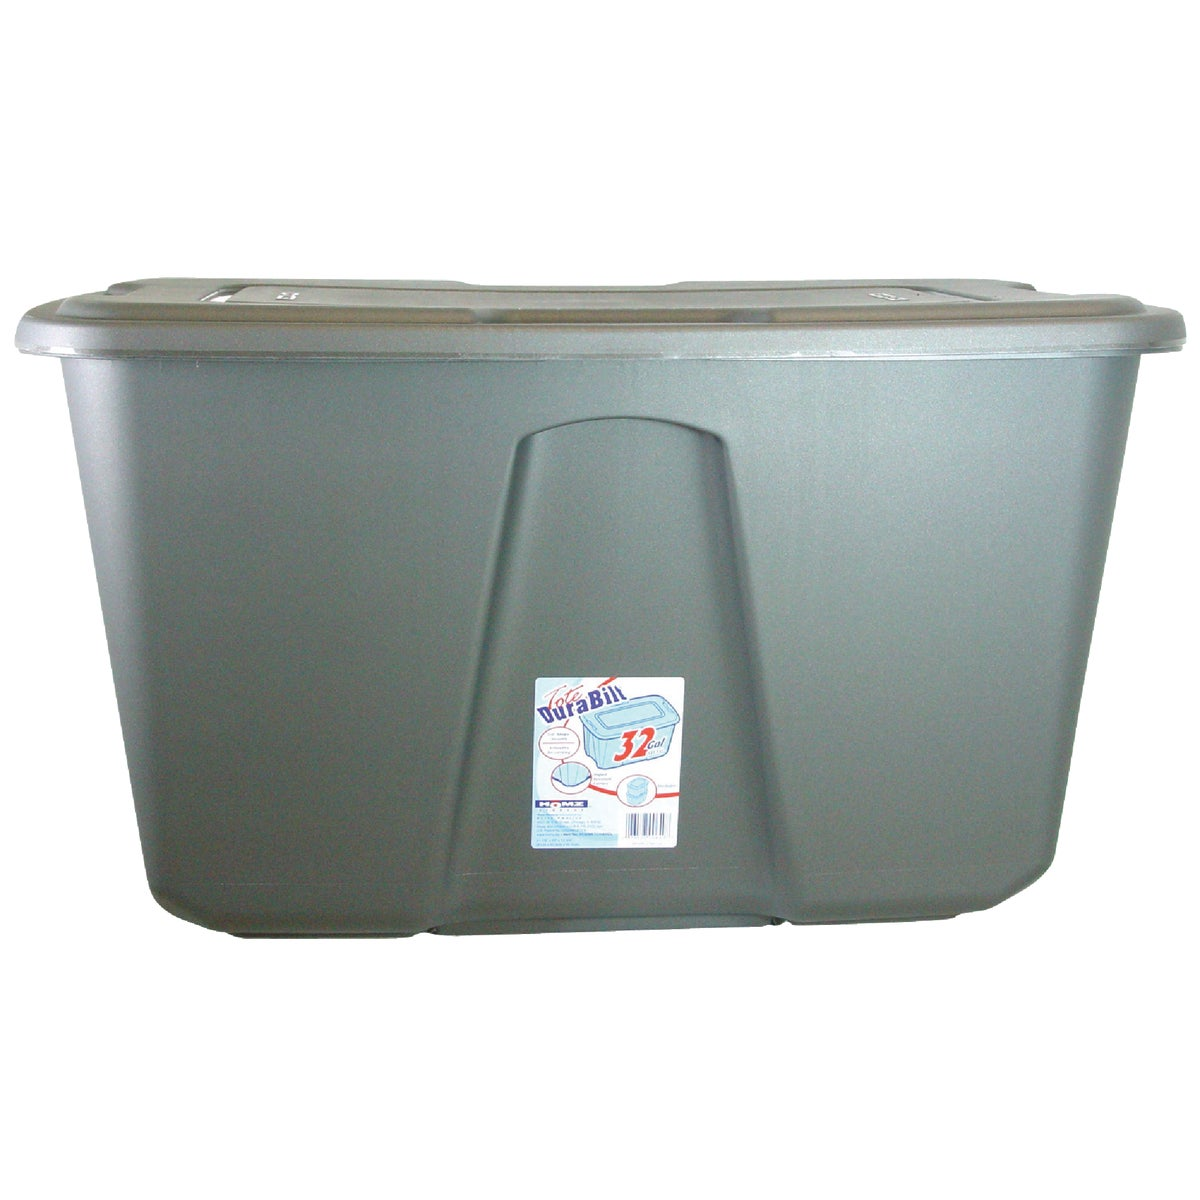 32 GALLON TOTE BOX - 6530RMC.06 by Homz/ Tamor